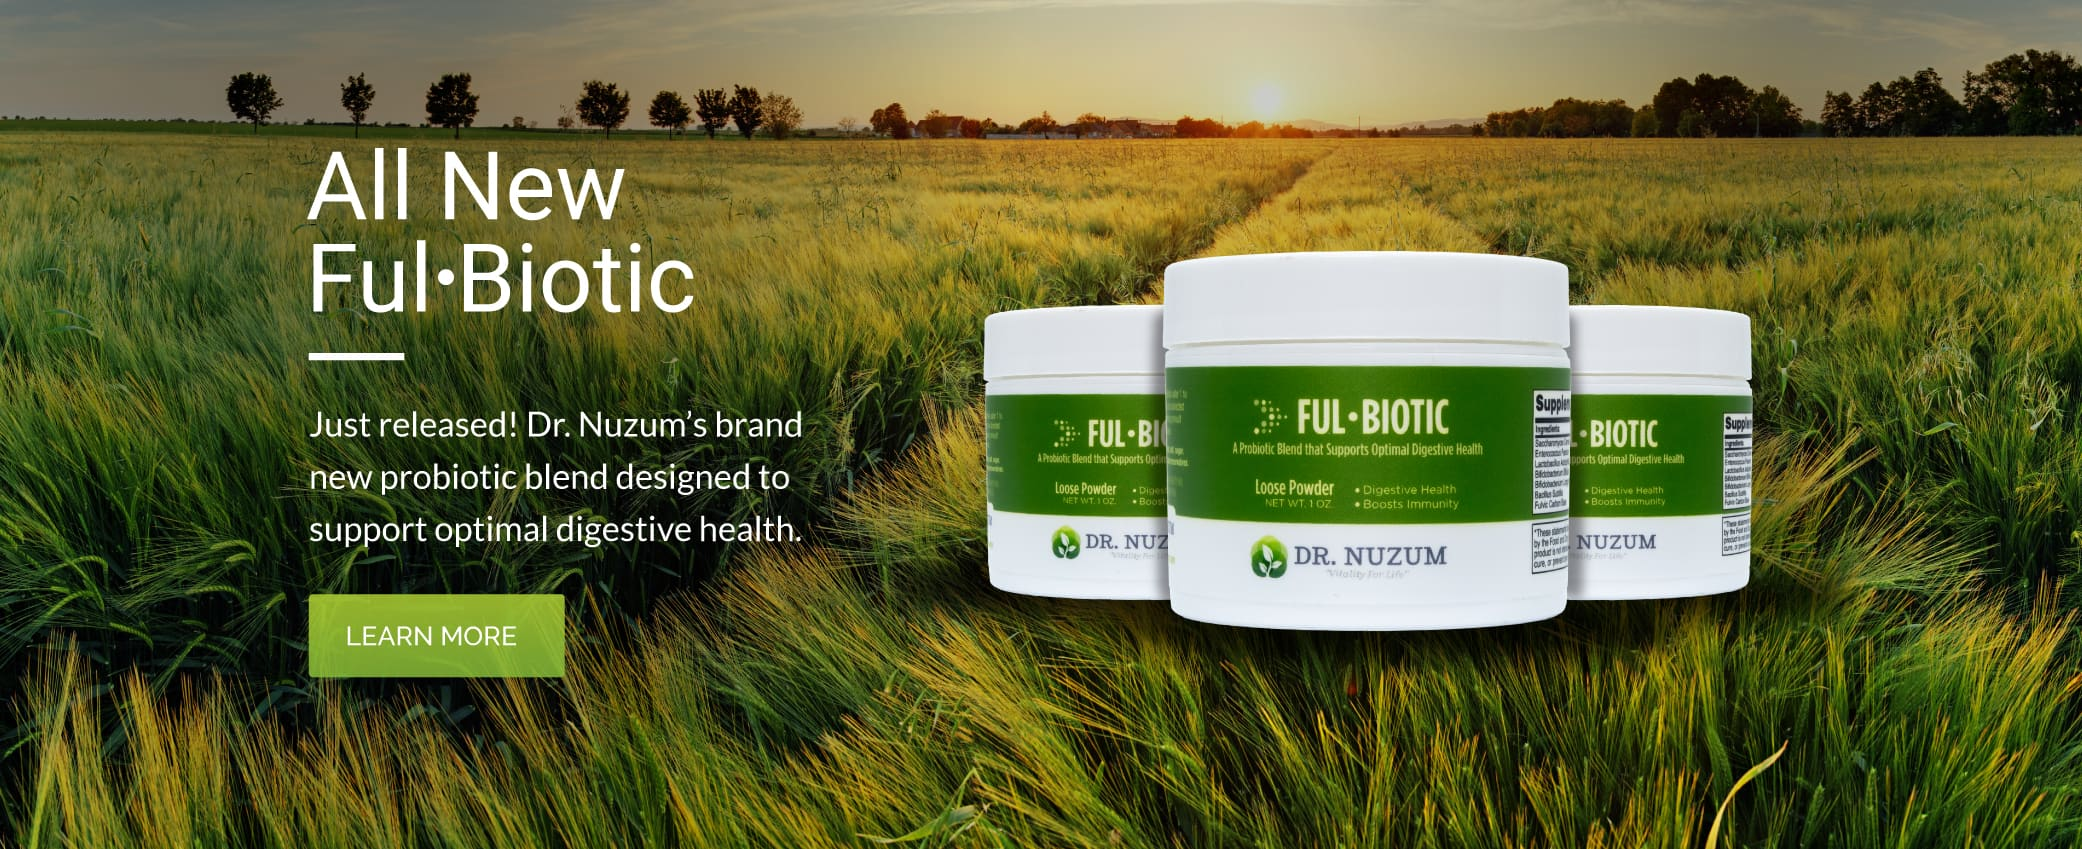 All New Ful-Biotic